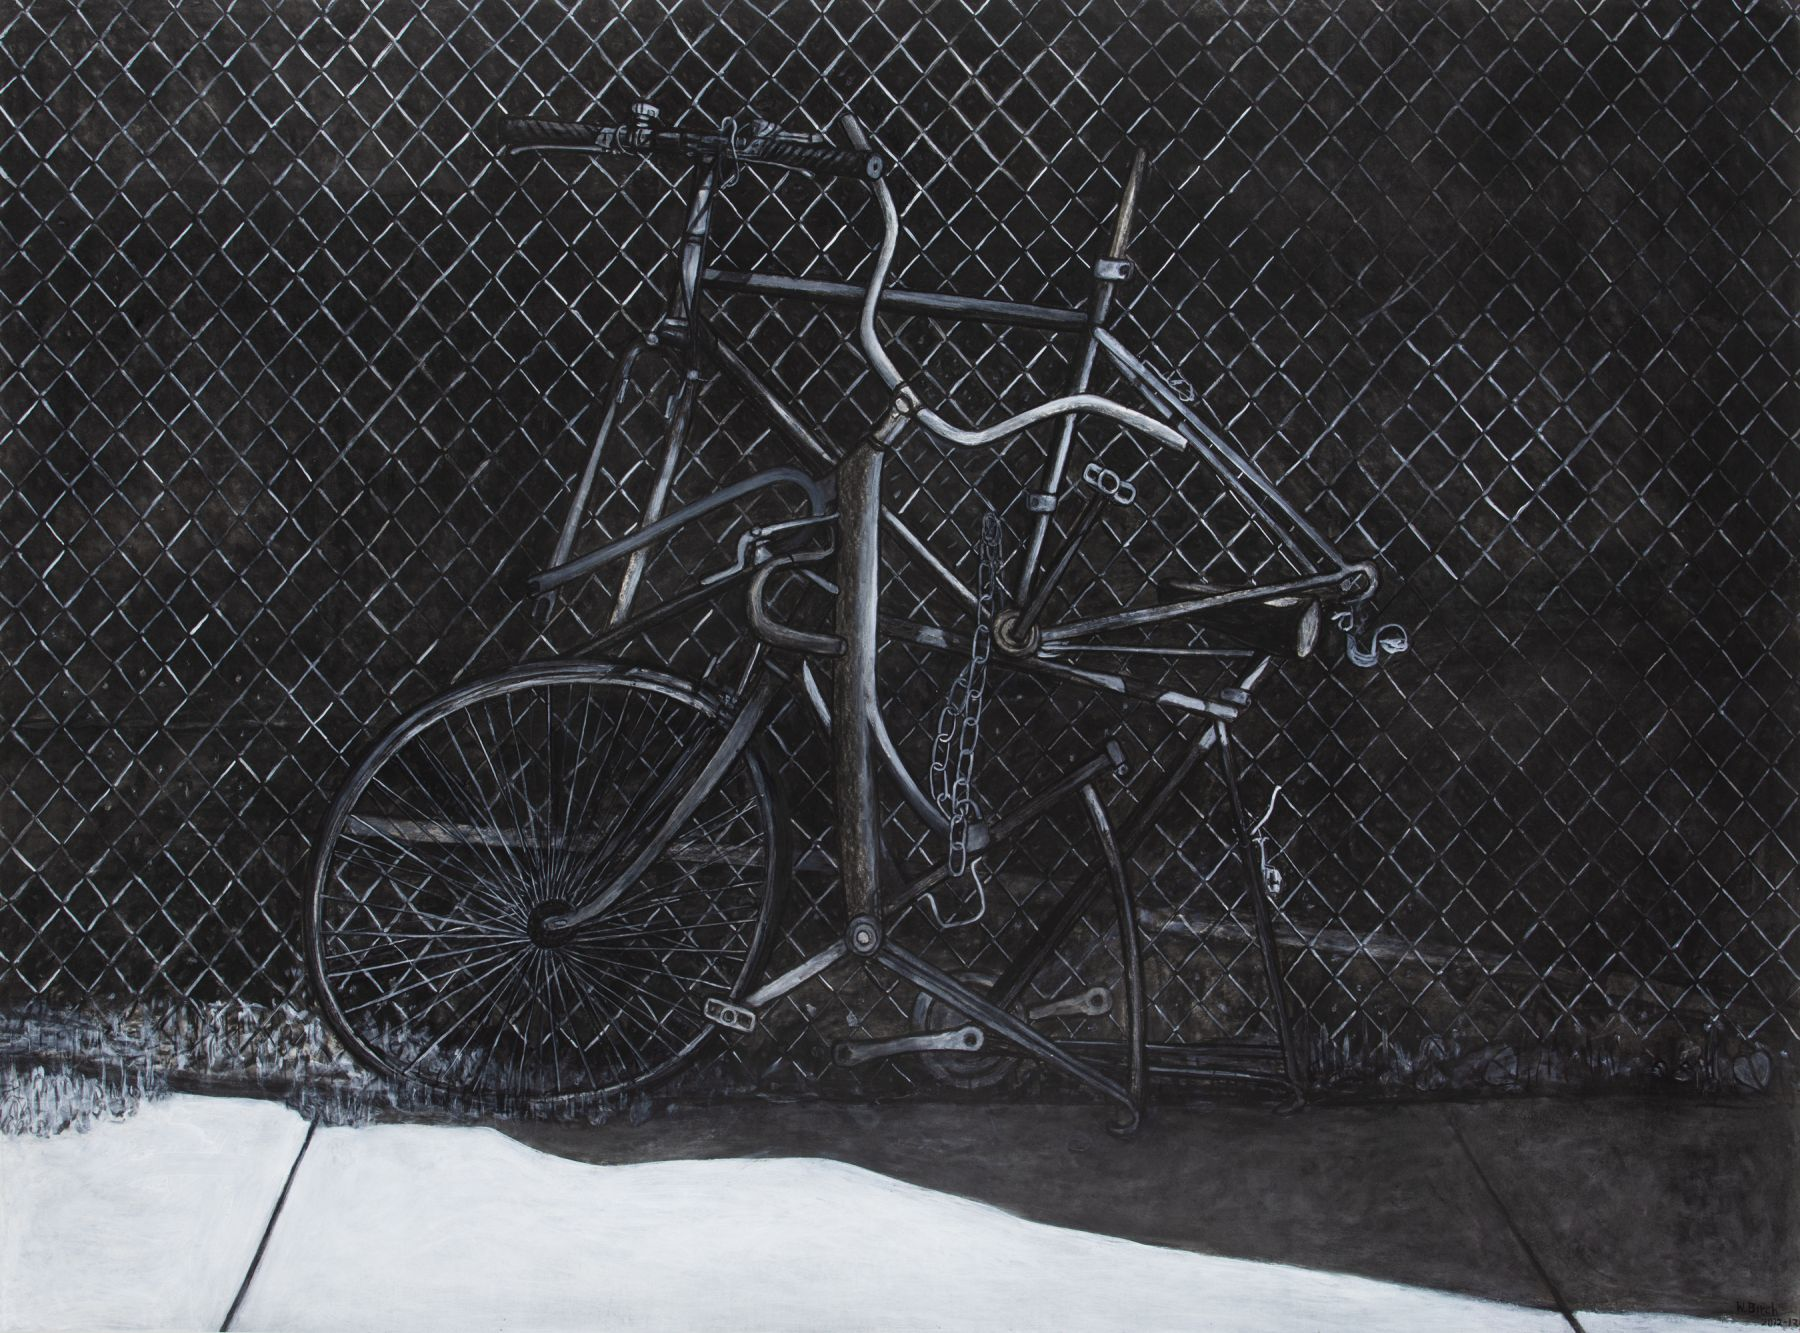 Text, bicycle